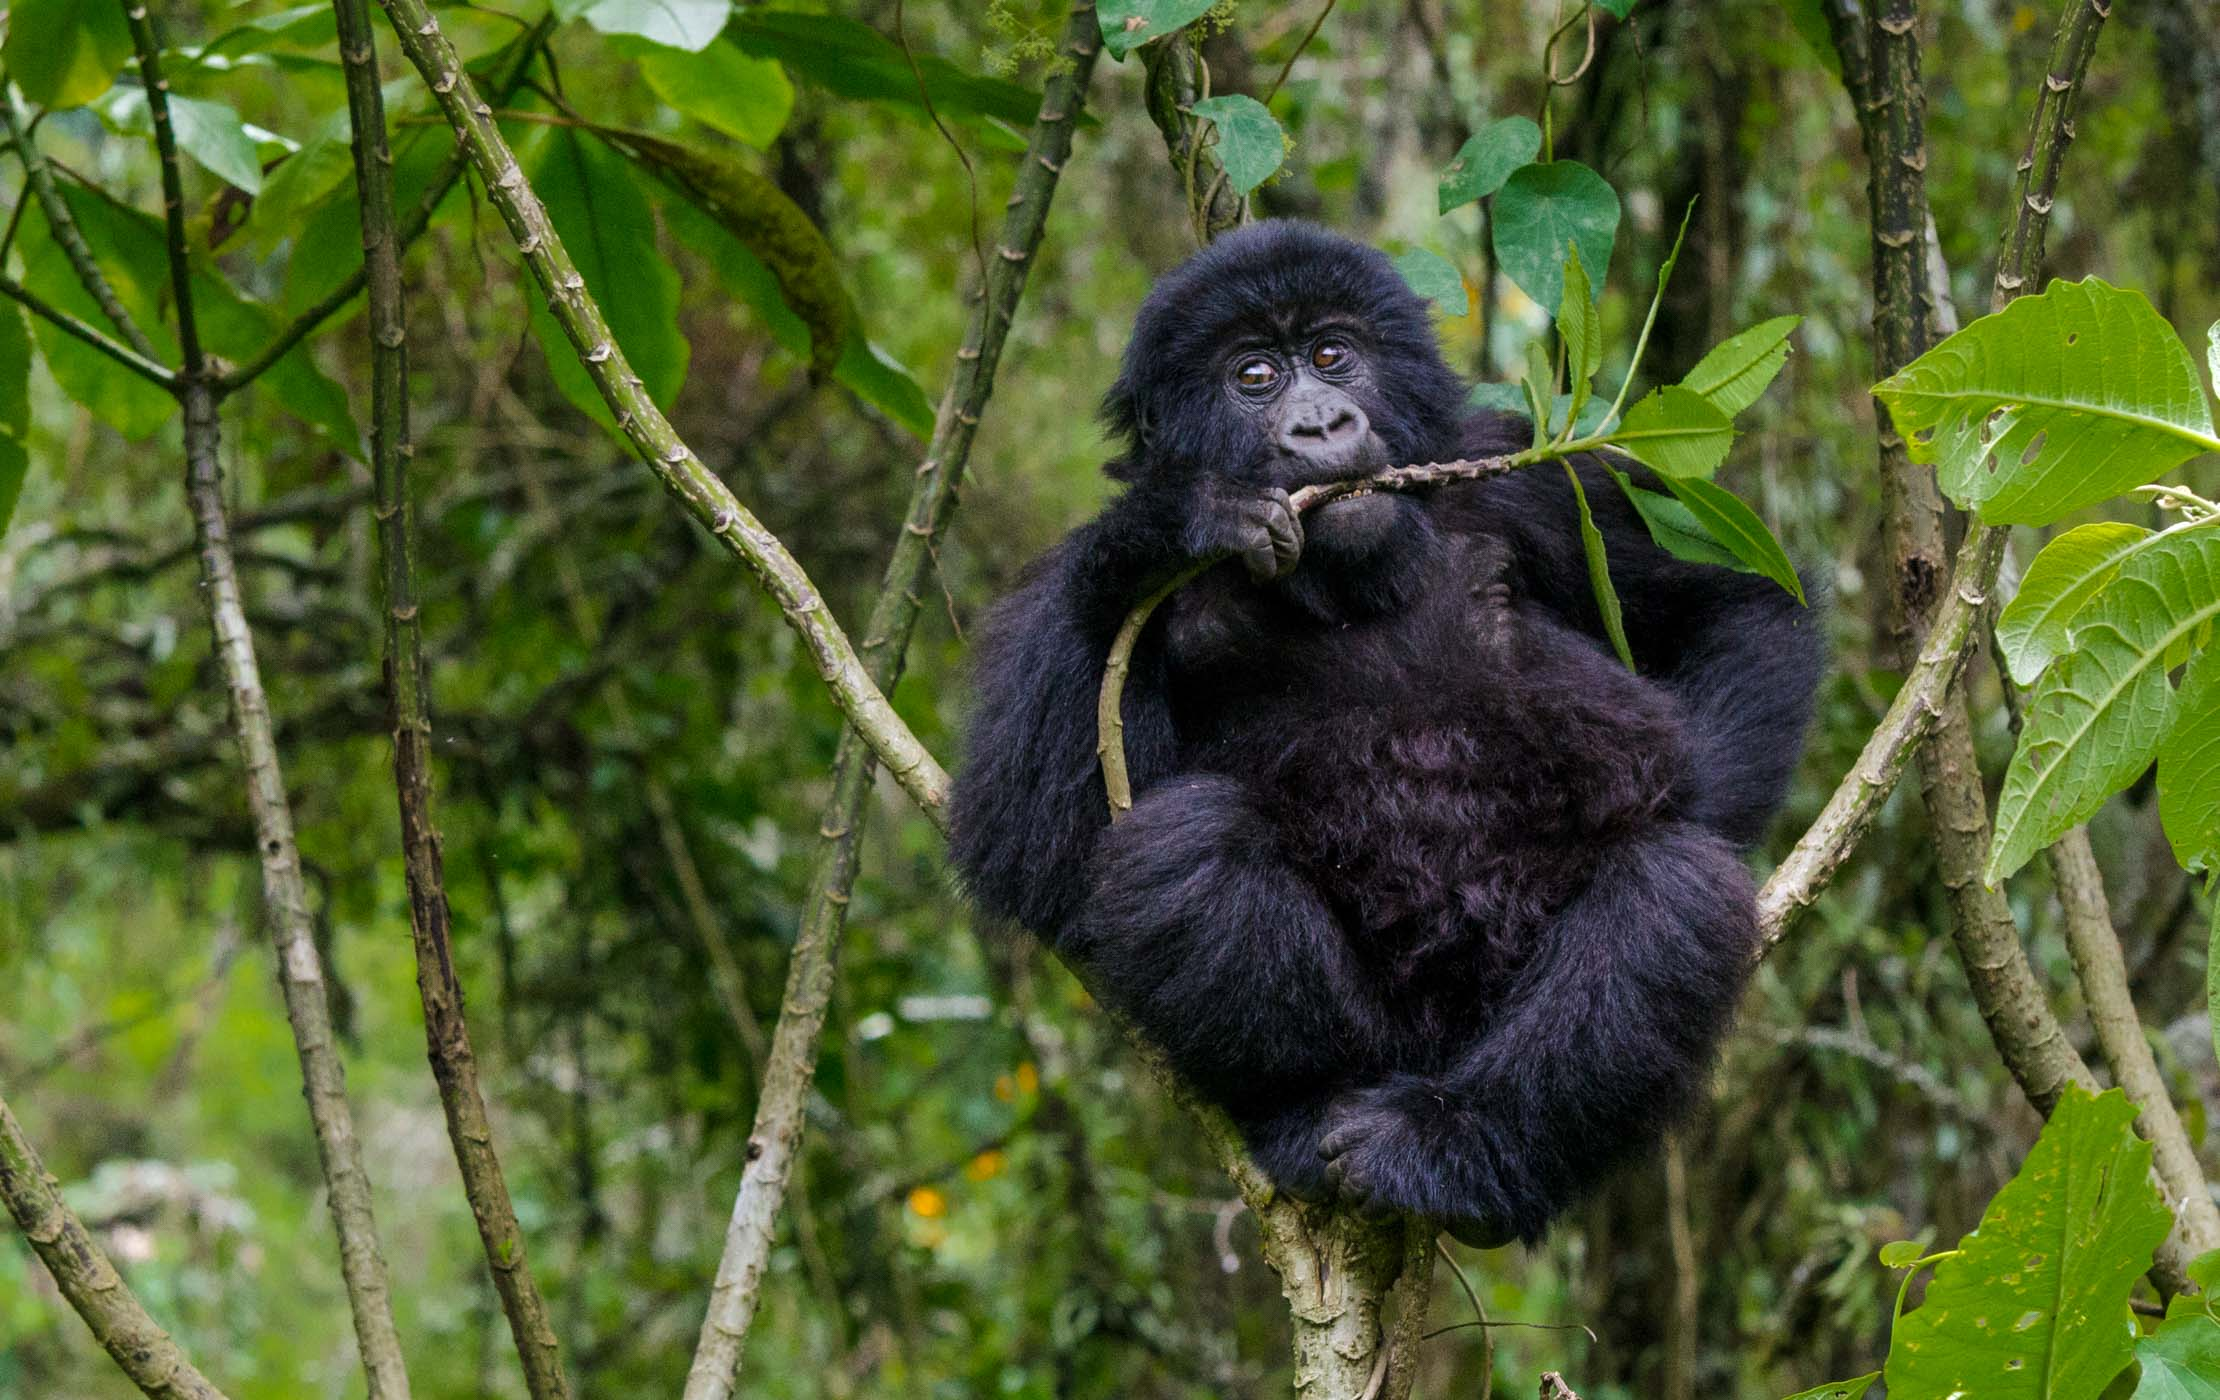 The Mountain Gorillas of Central Africa